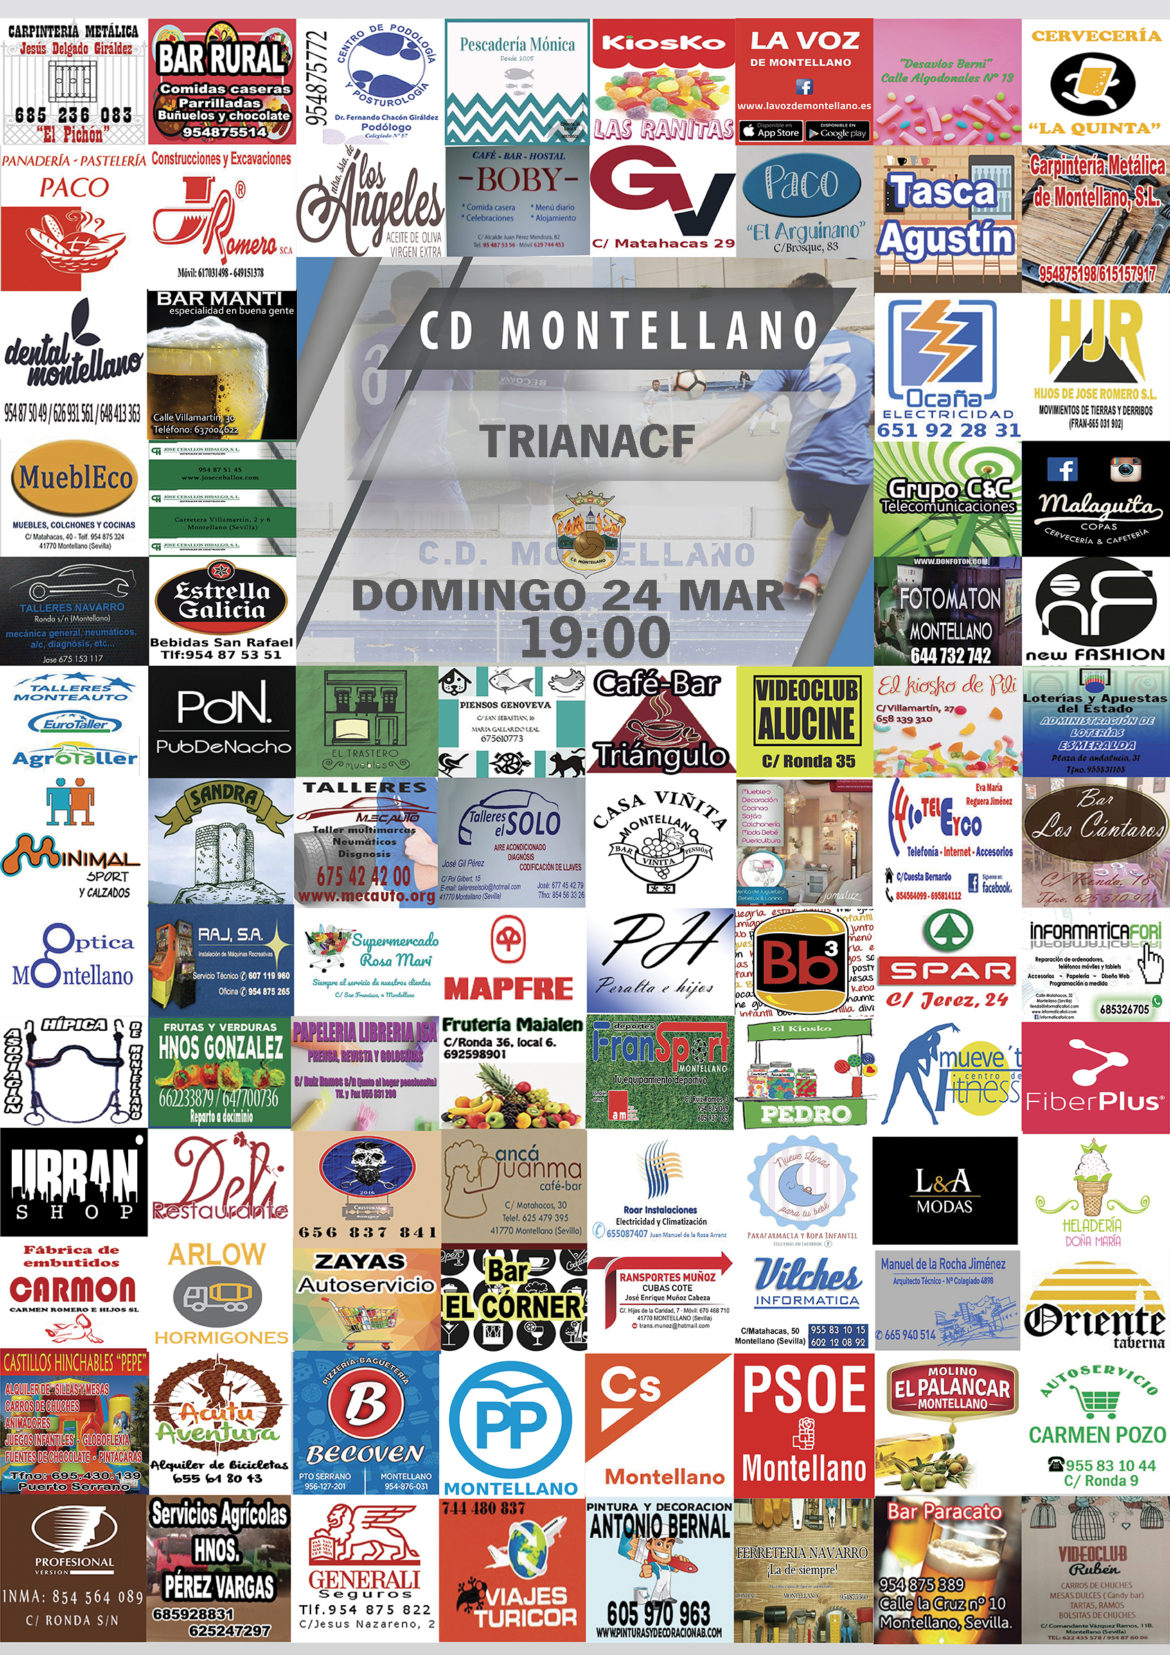 cd montellano vs triana cf